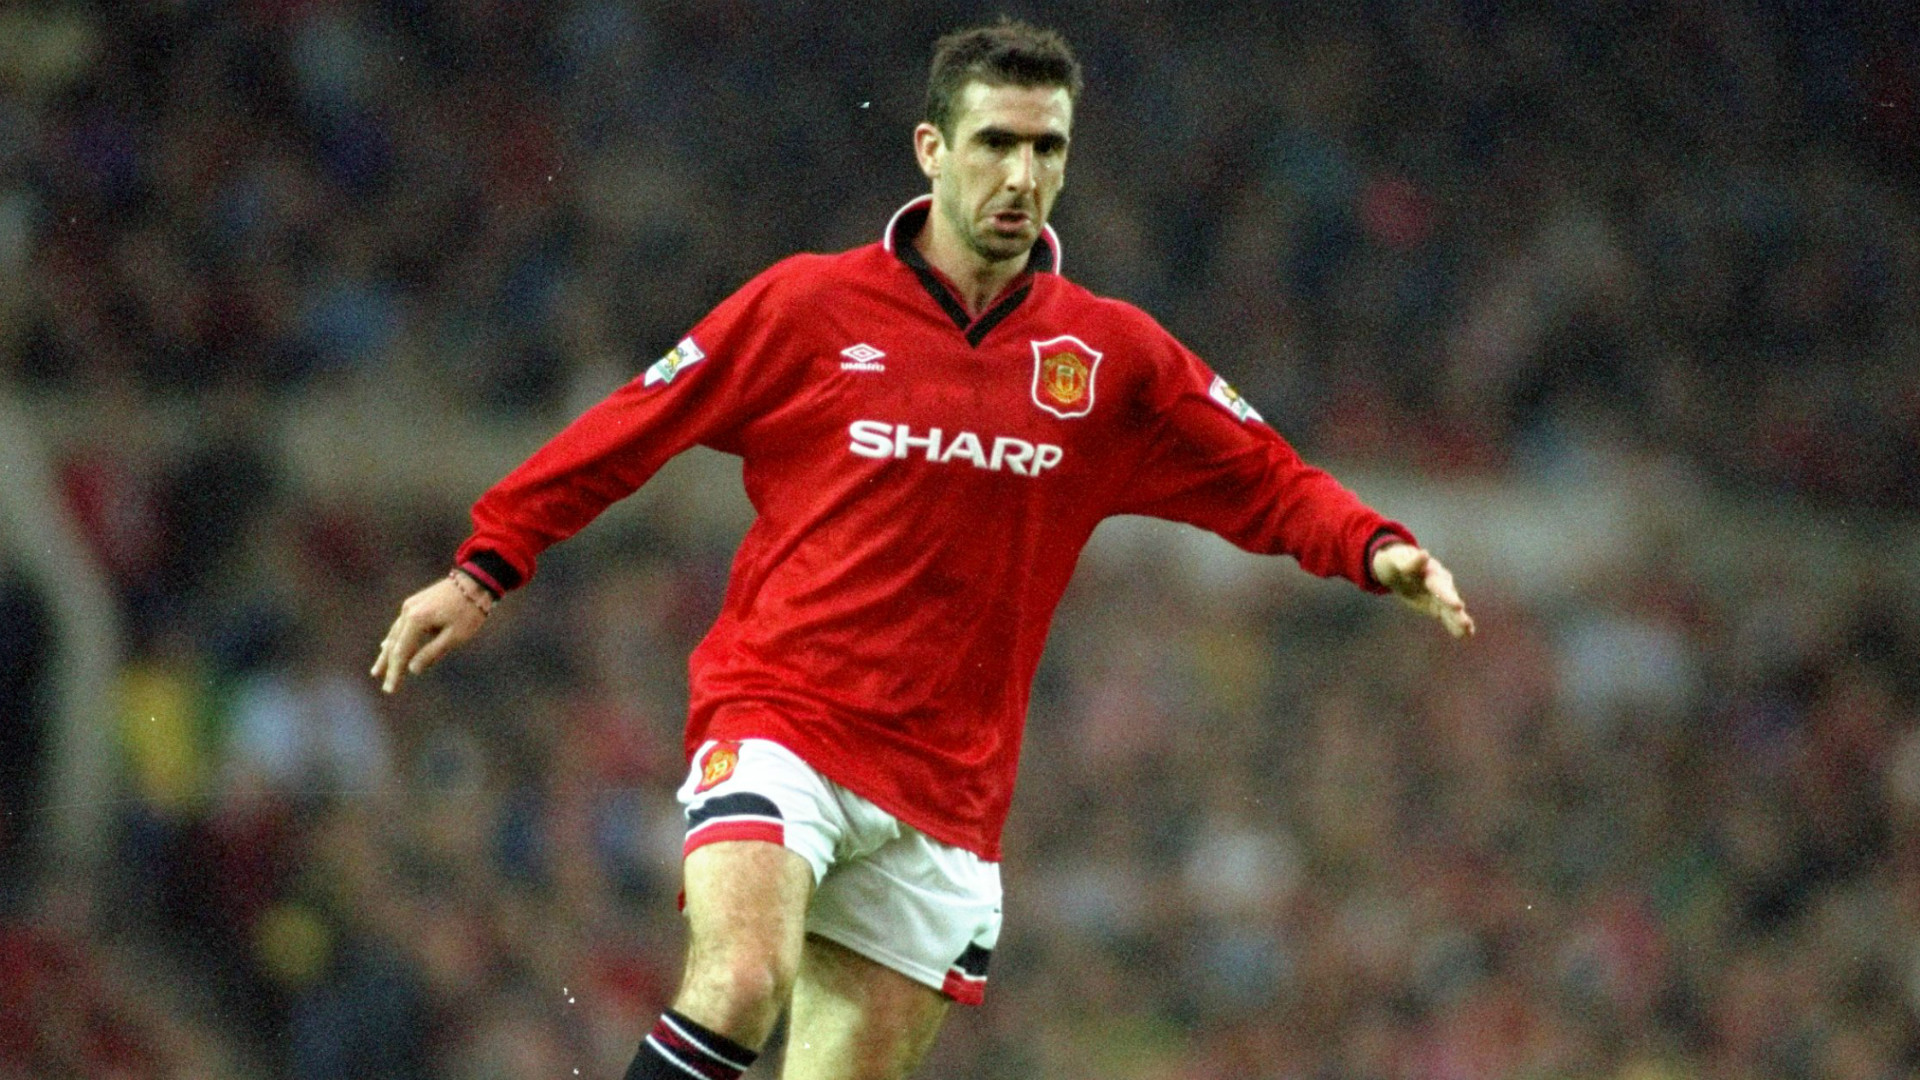 Eric cantona picture · eric cantona is most known for his skill on the soccer field. Eric Cantona: The Manchester United legend's most ...